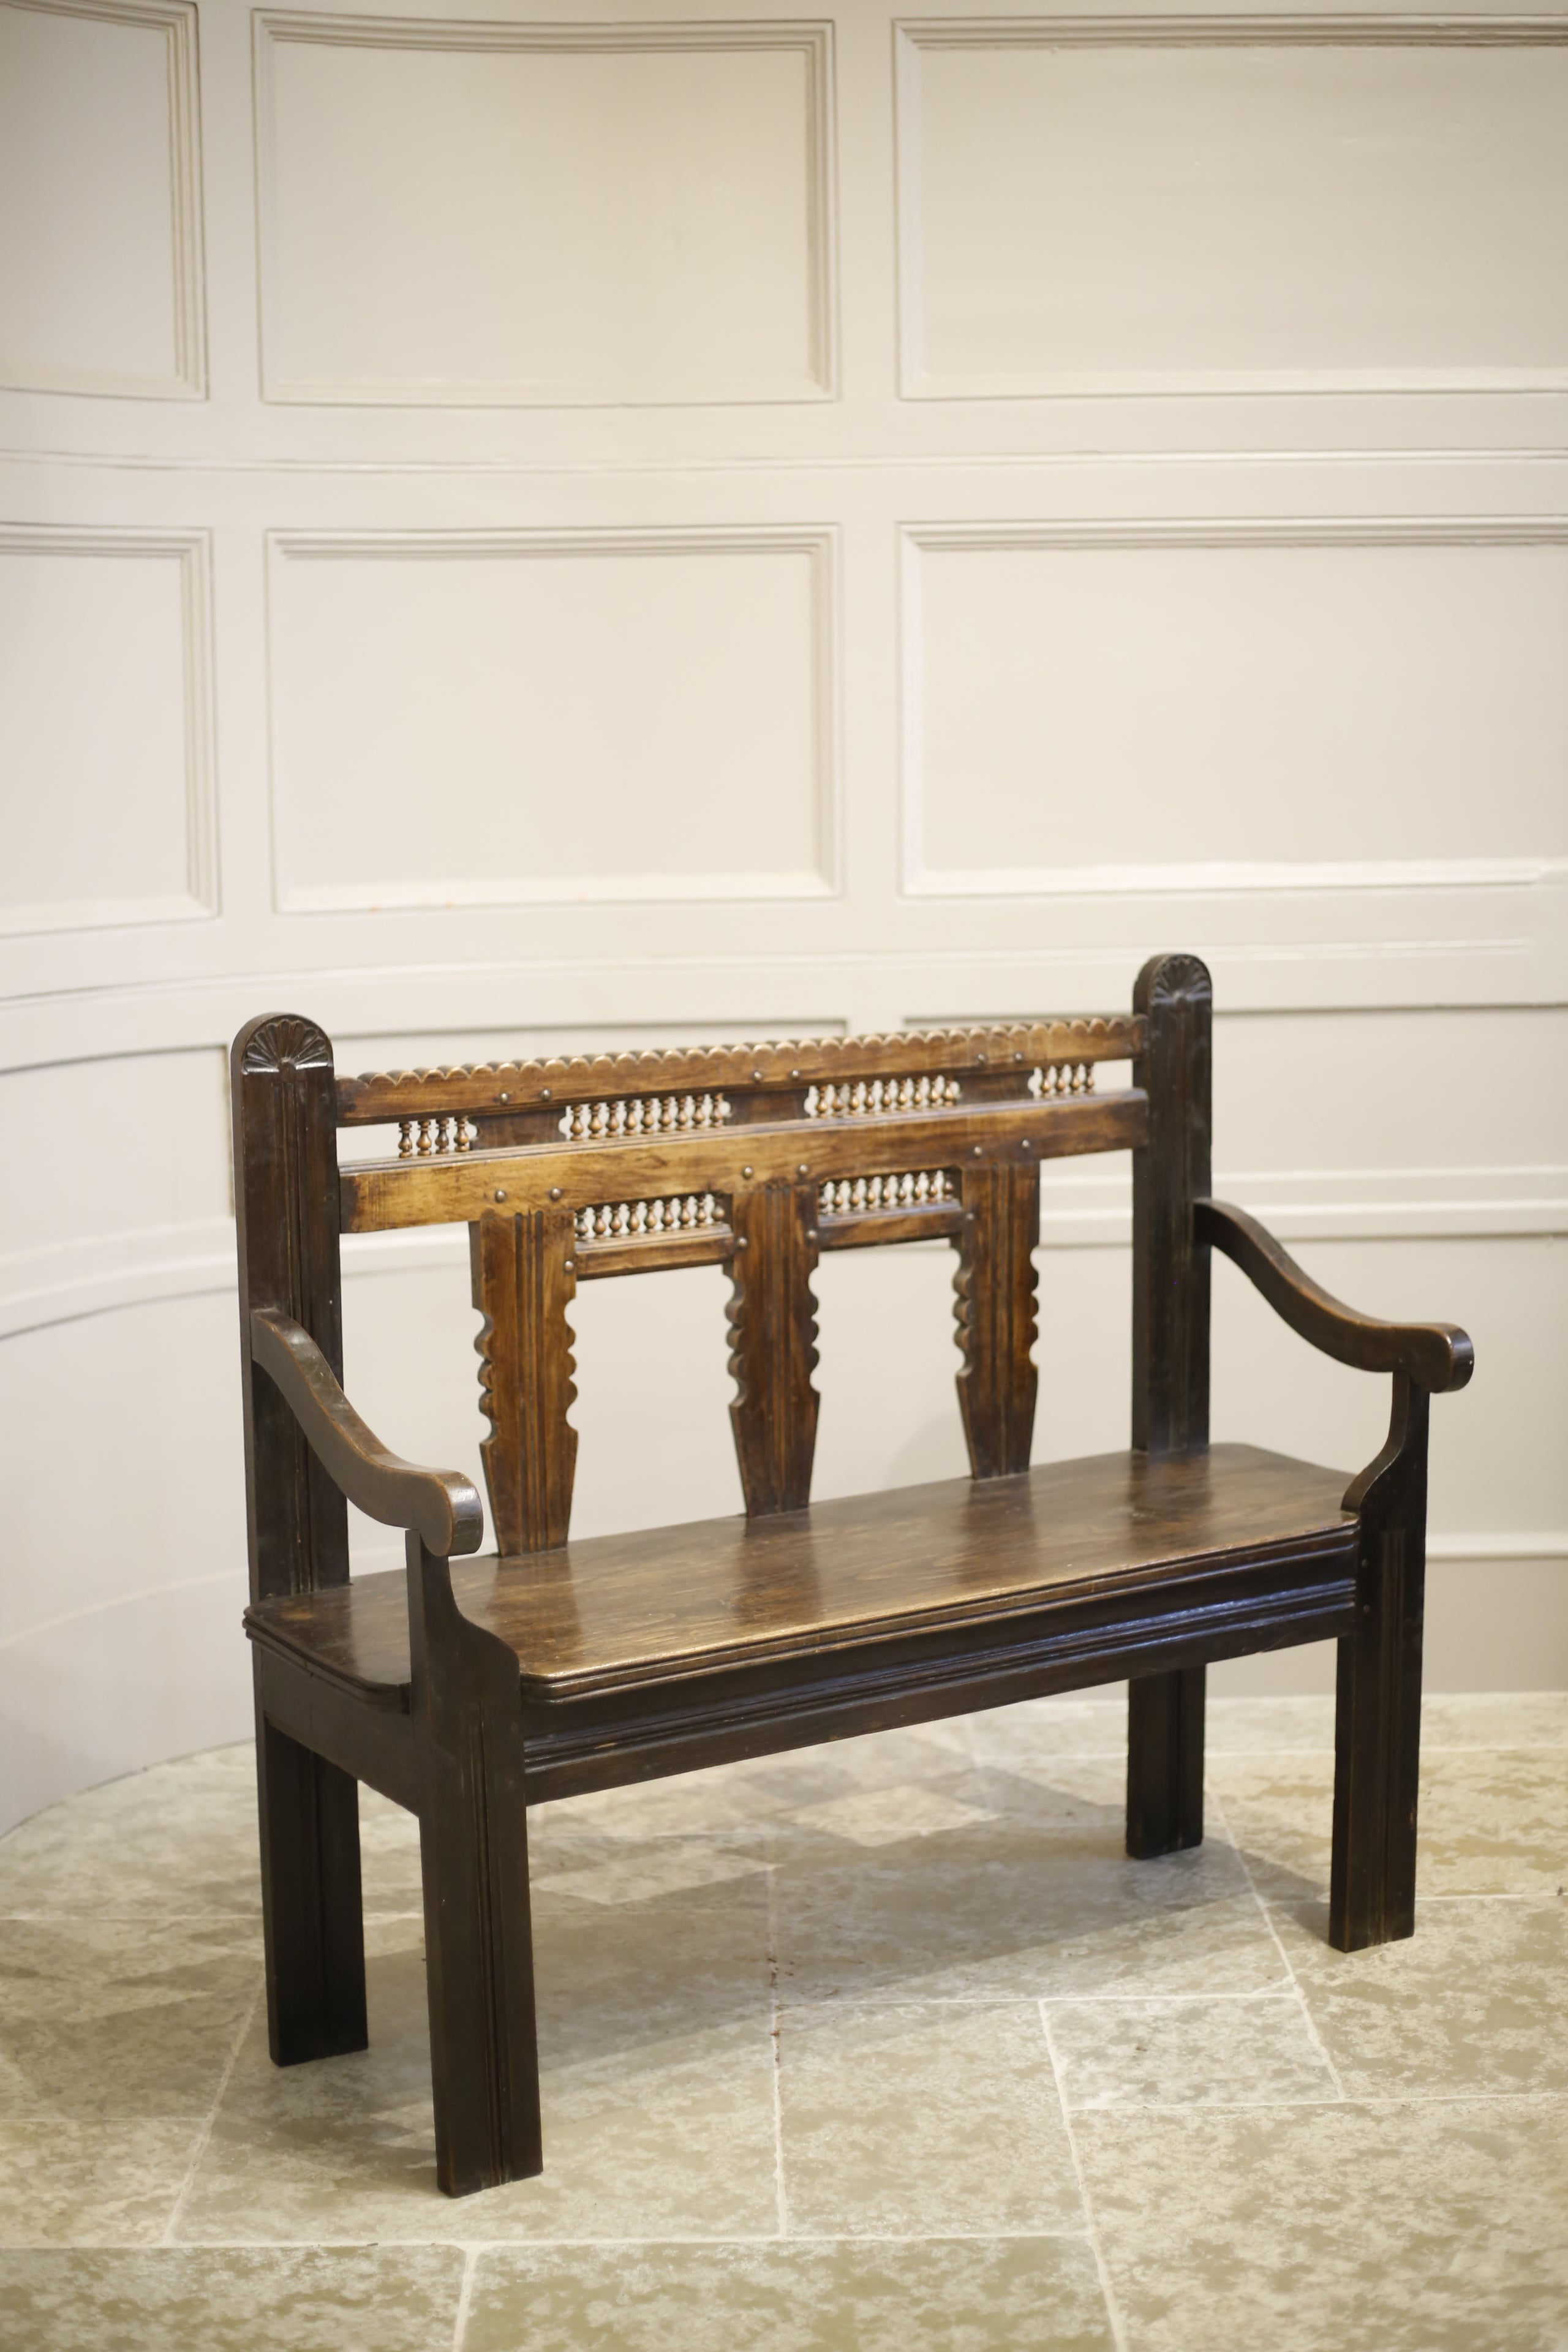 19th Century French Breton Country Bench Tallboy Interiors